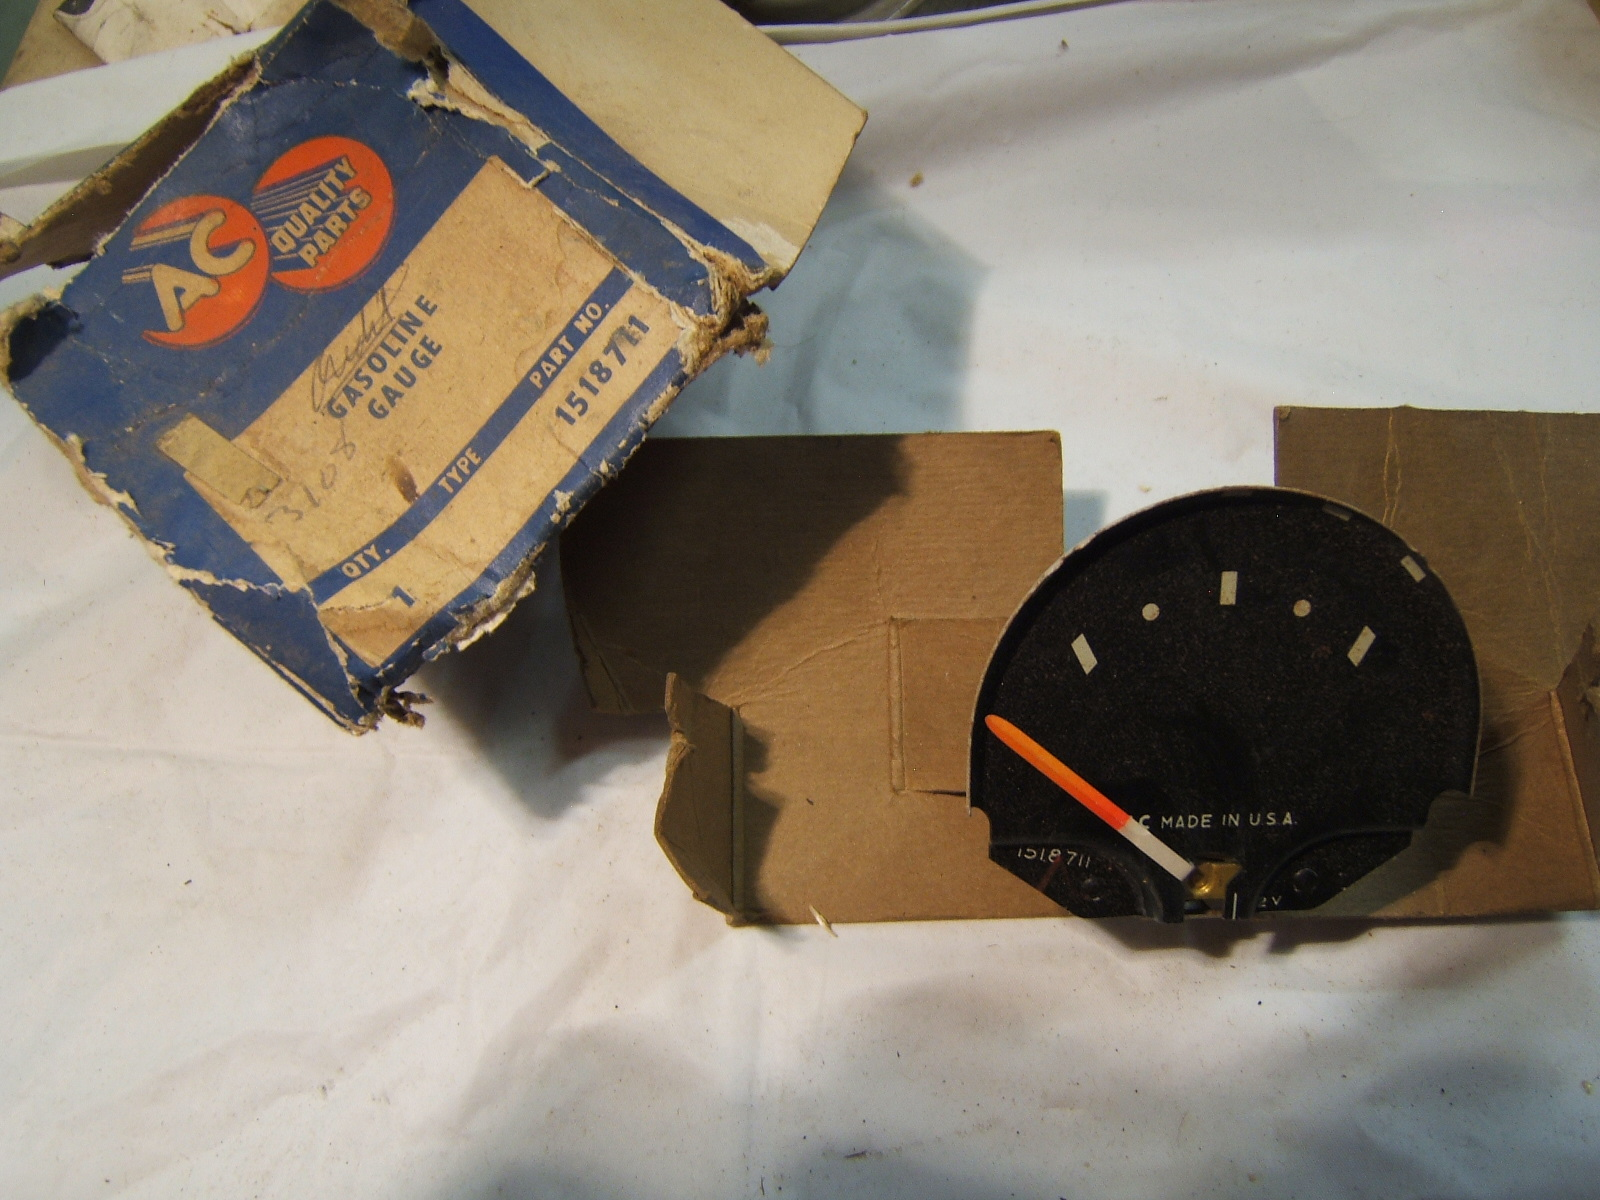 1957 chevrolet gas / fuel gauge nos gm # 1518711 (a 1518711)